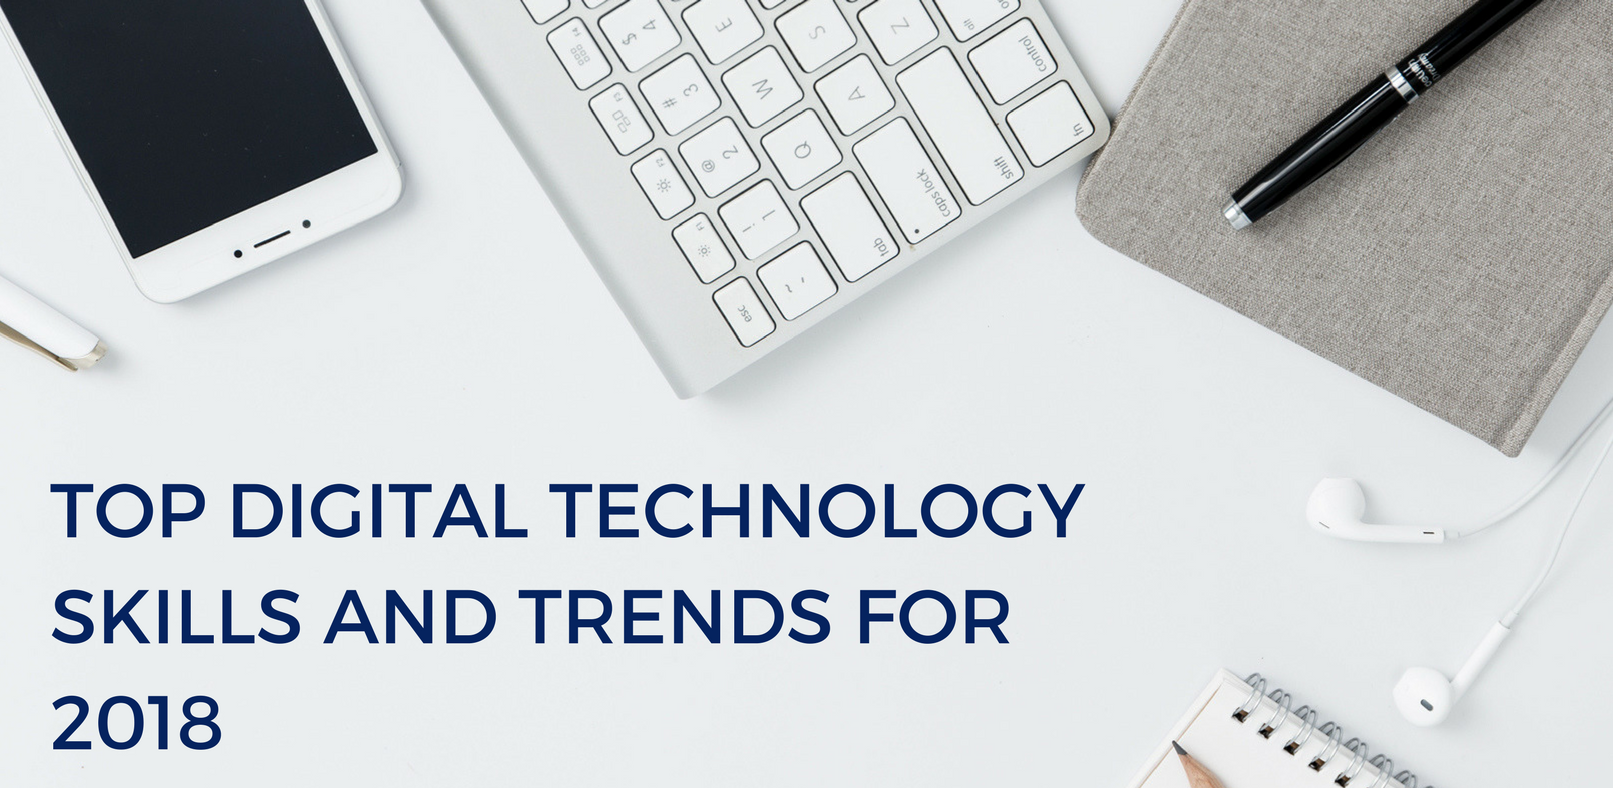 Top Digital Technology Skills and Trends for 2018